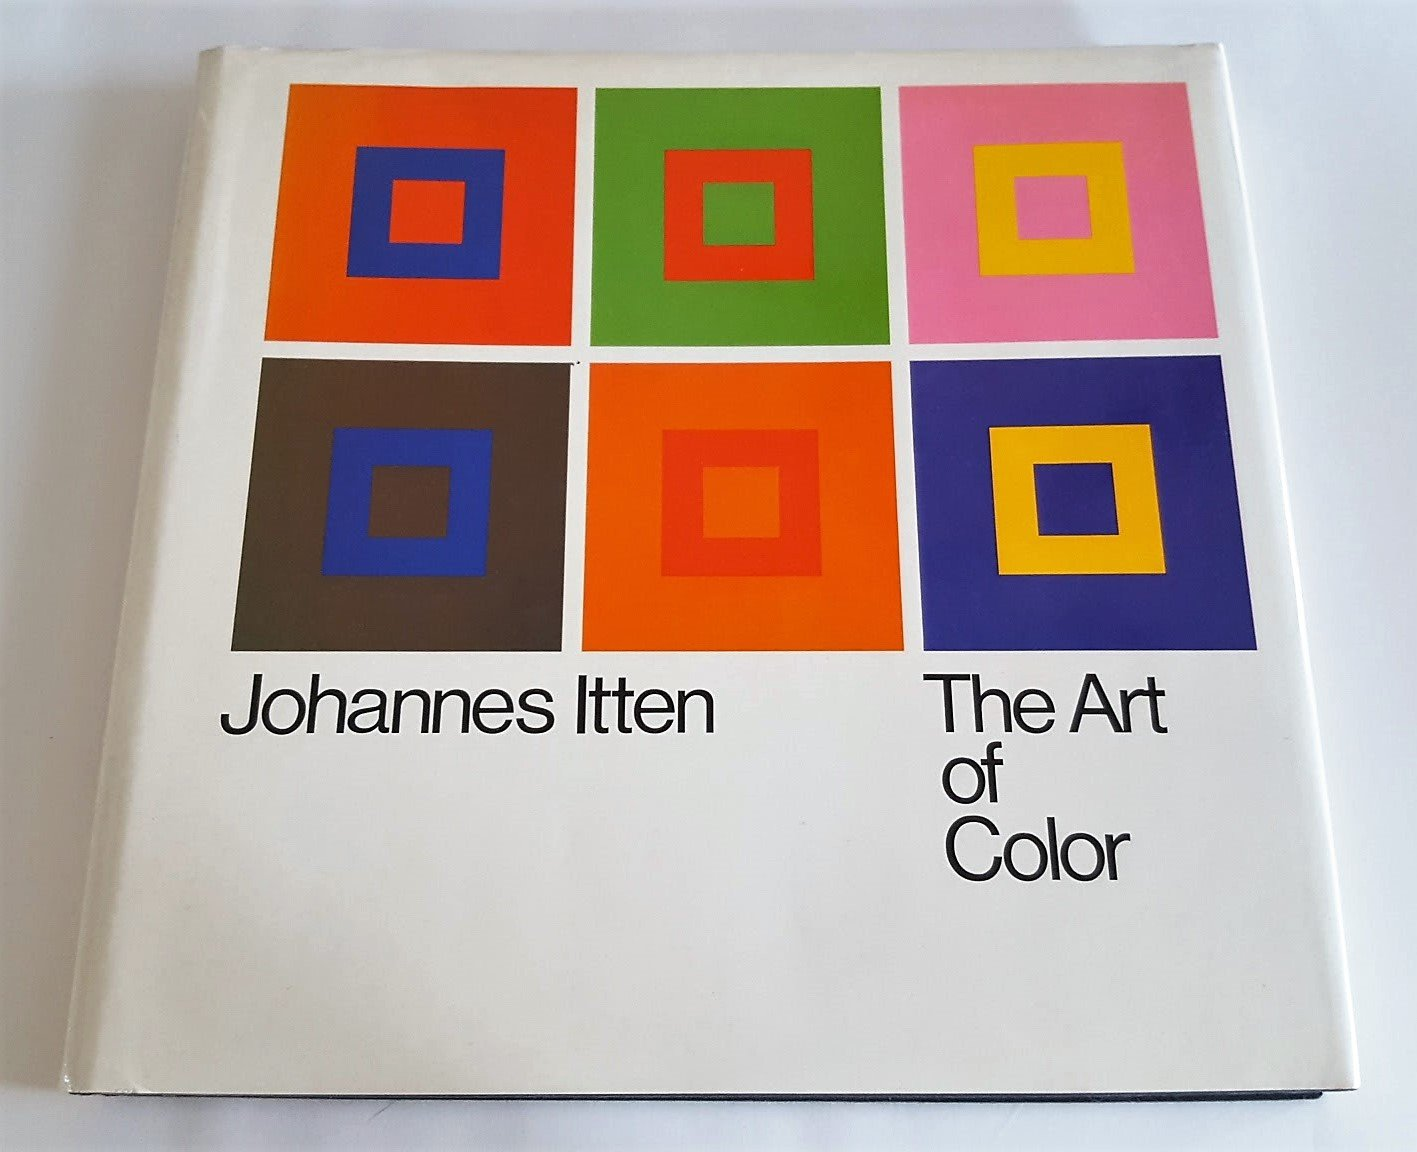 The Art of Color The Subjective Experience and Objective Rationale of Color